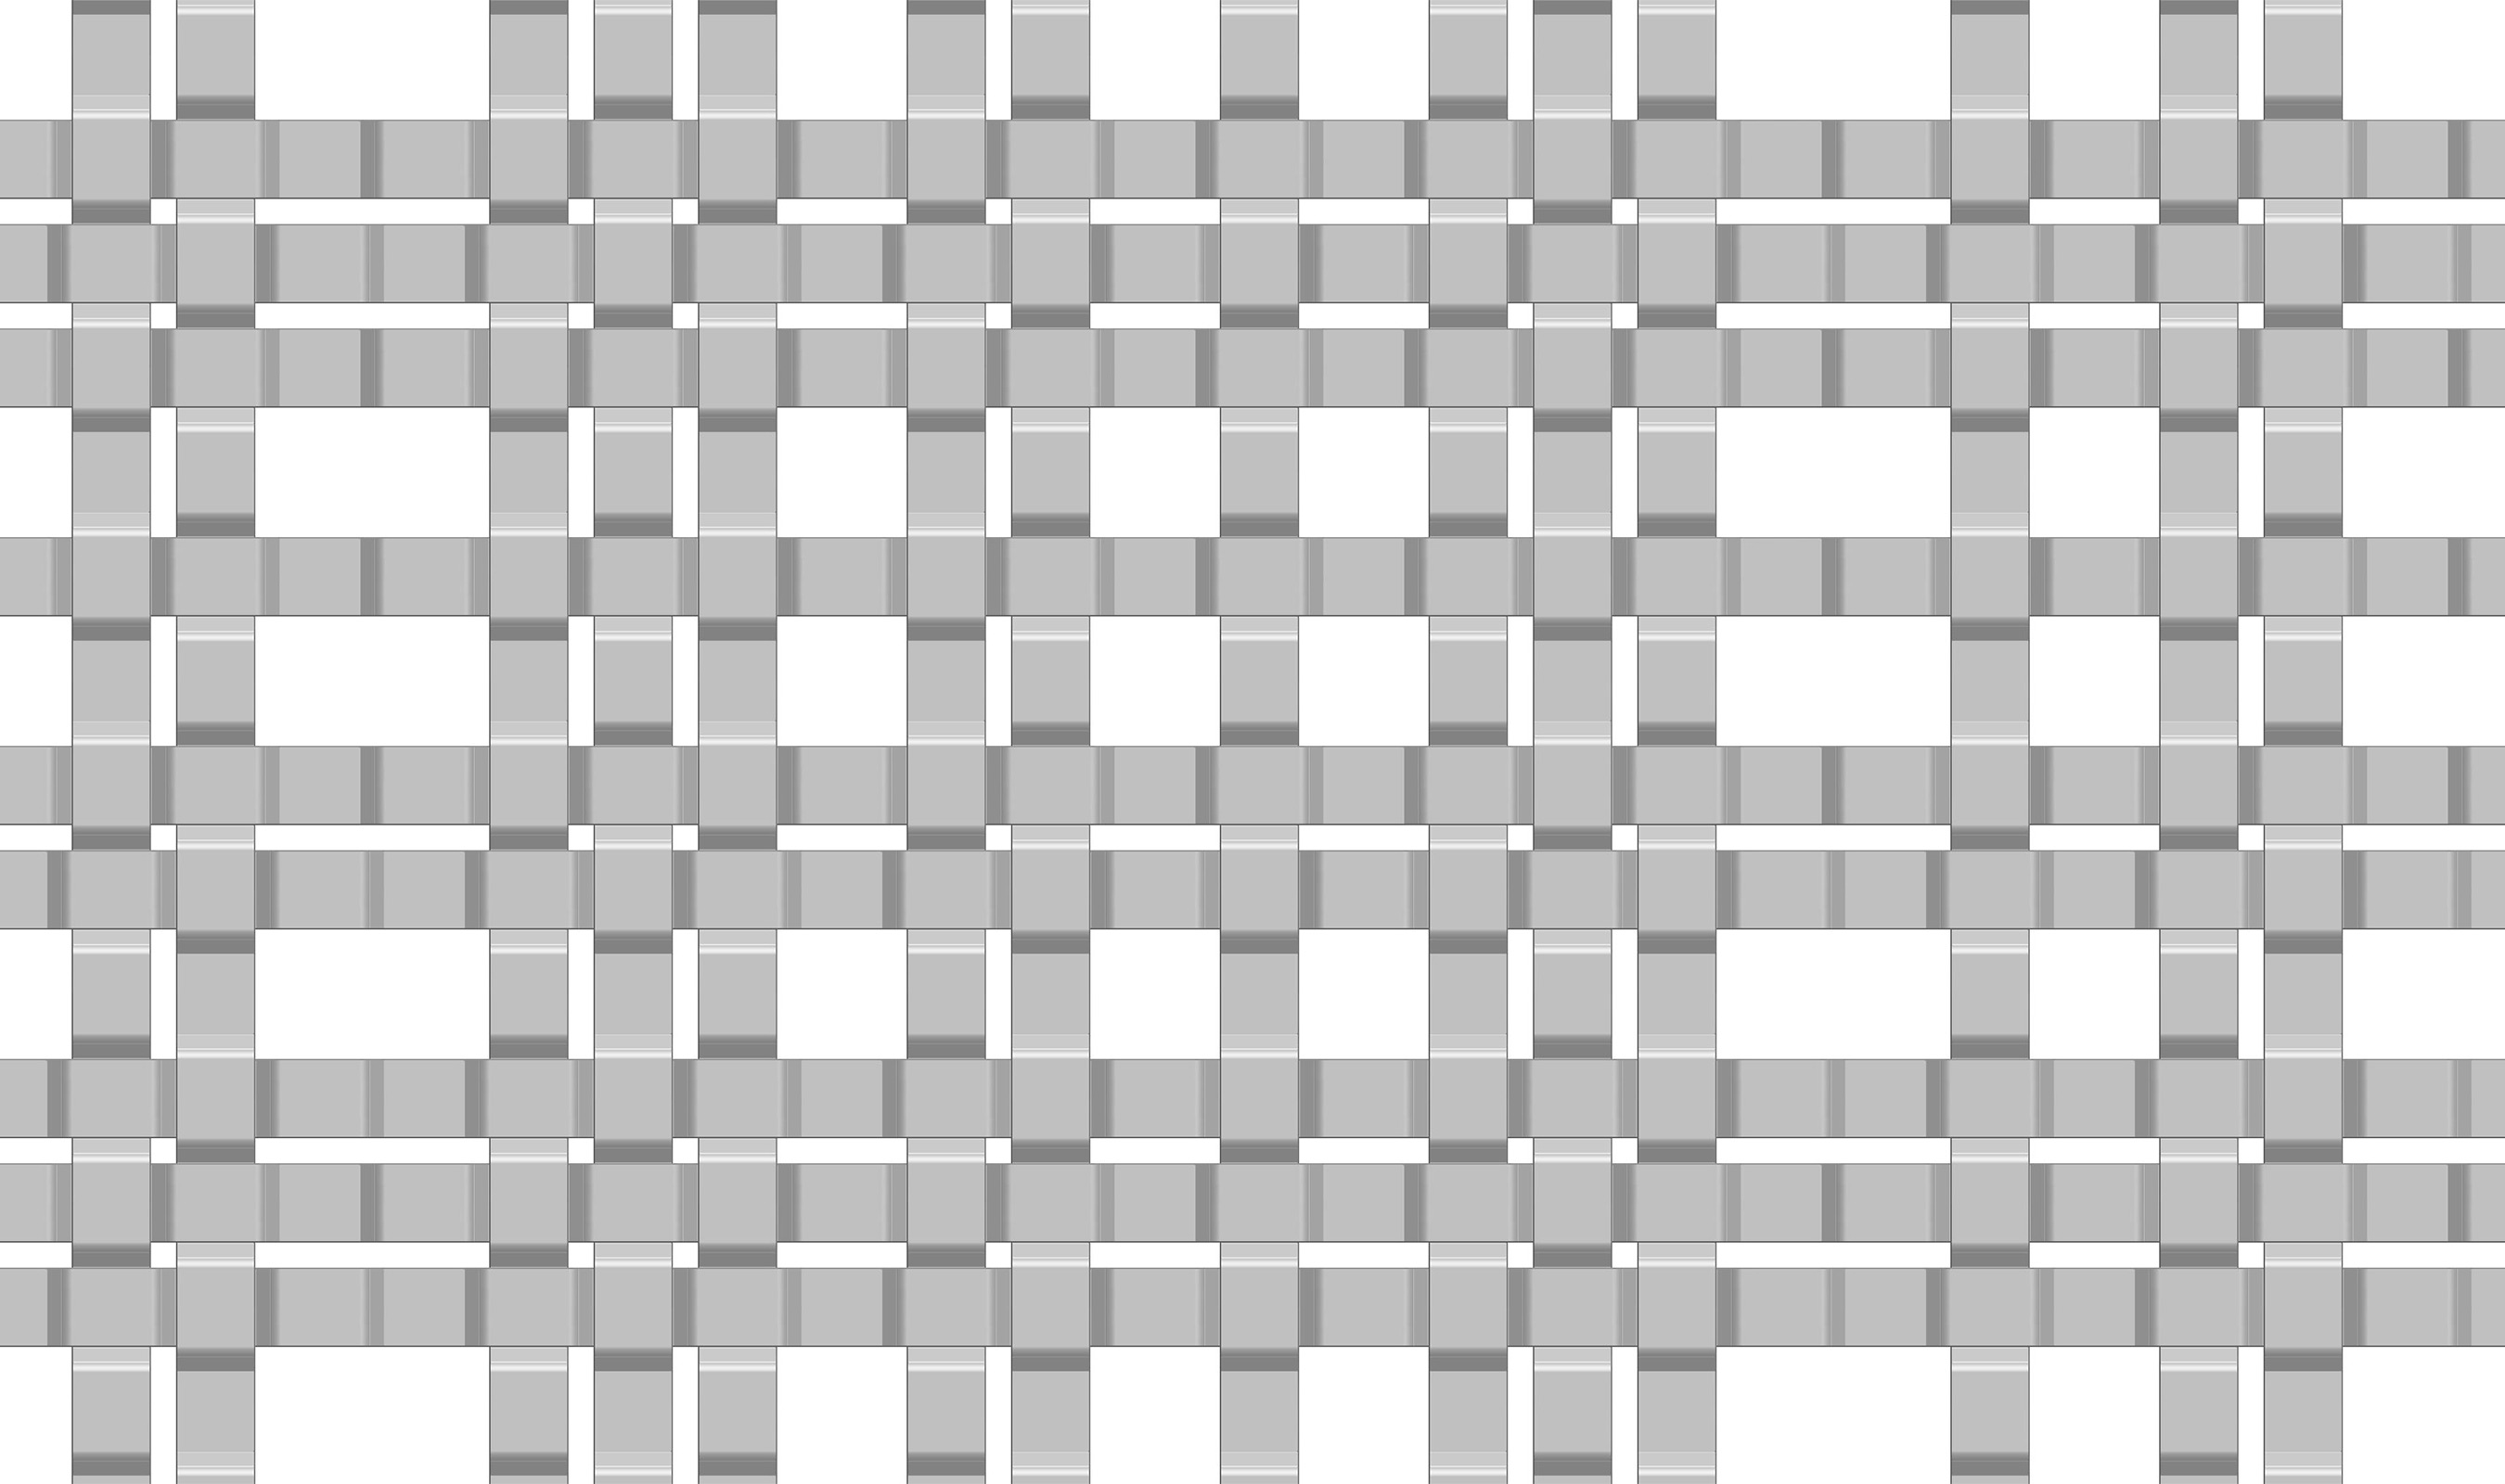 SJD-31 large wire mesh pattern drawn in CAD